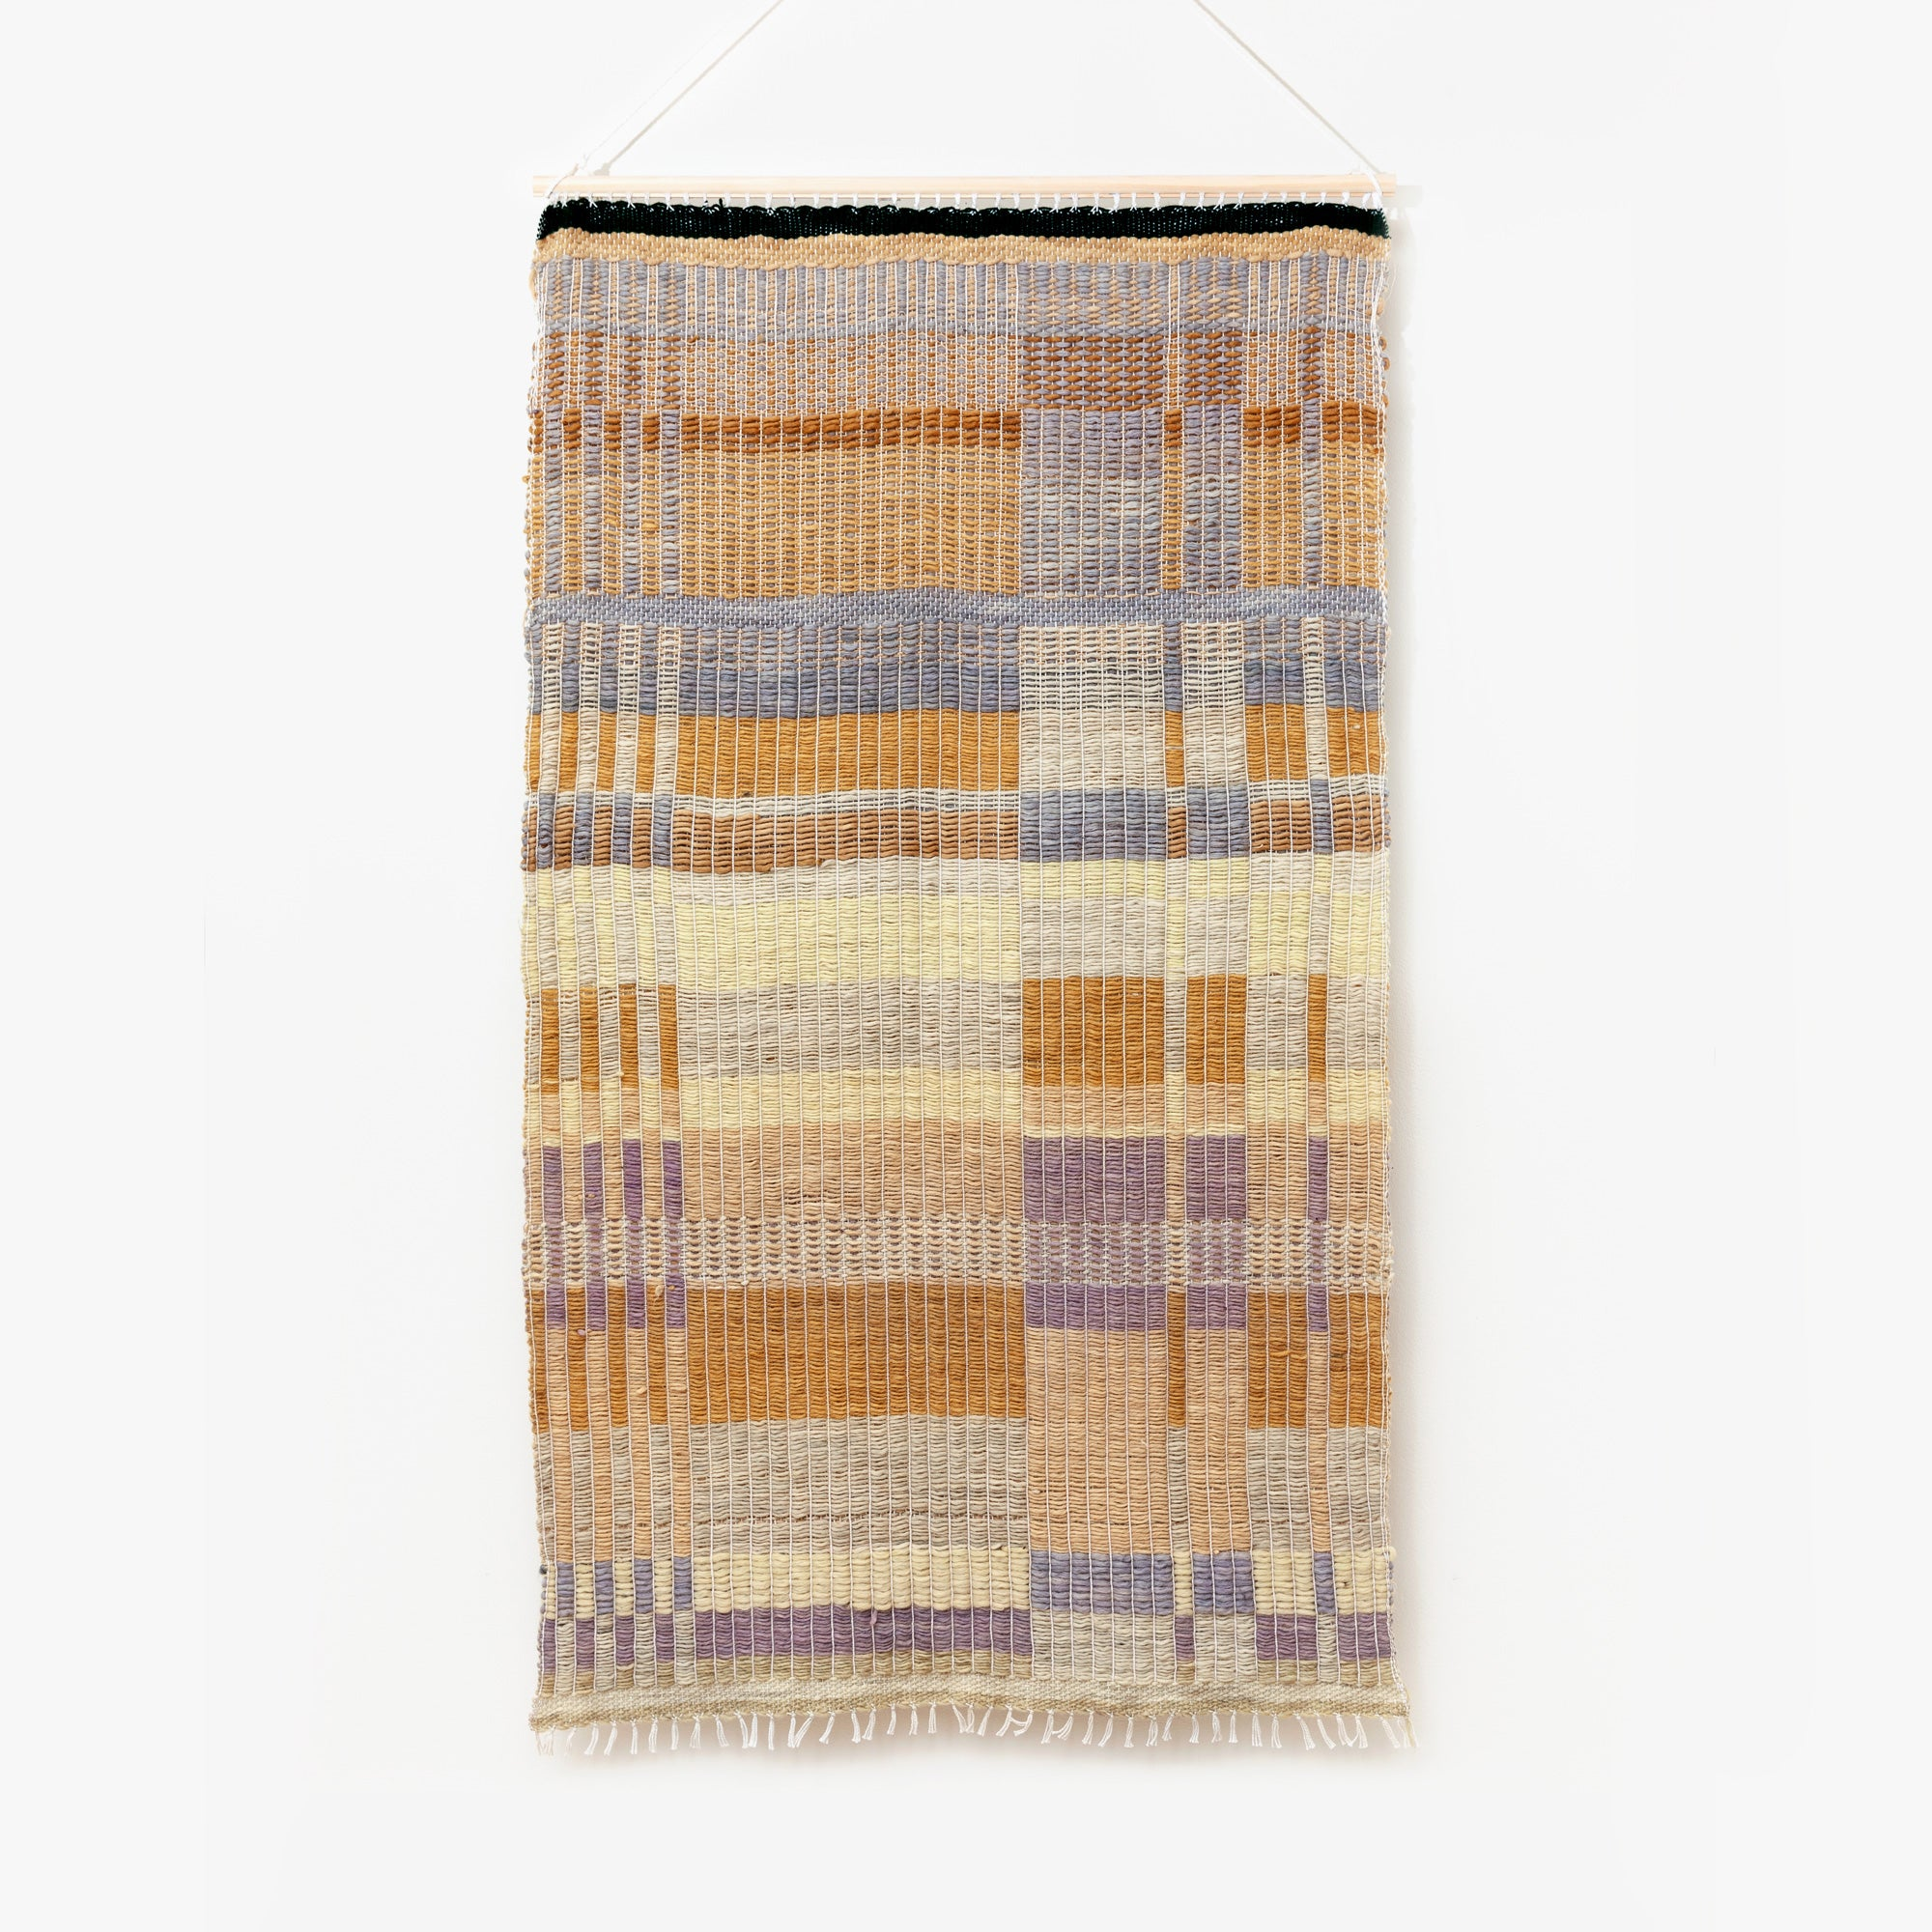 Nat Dye: Island Weaving